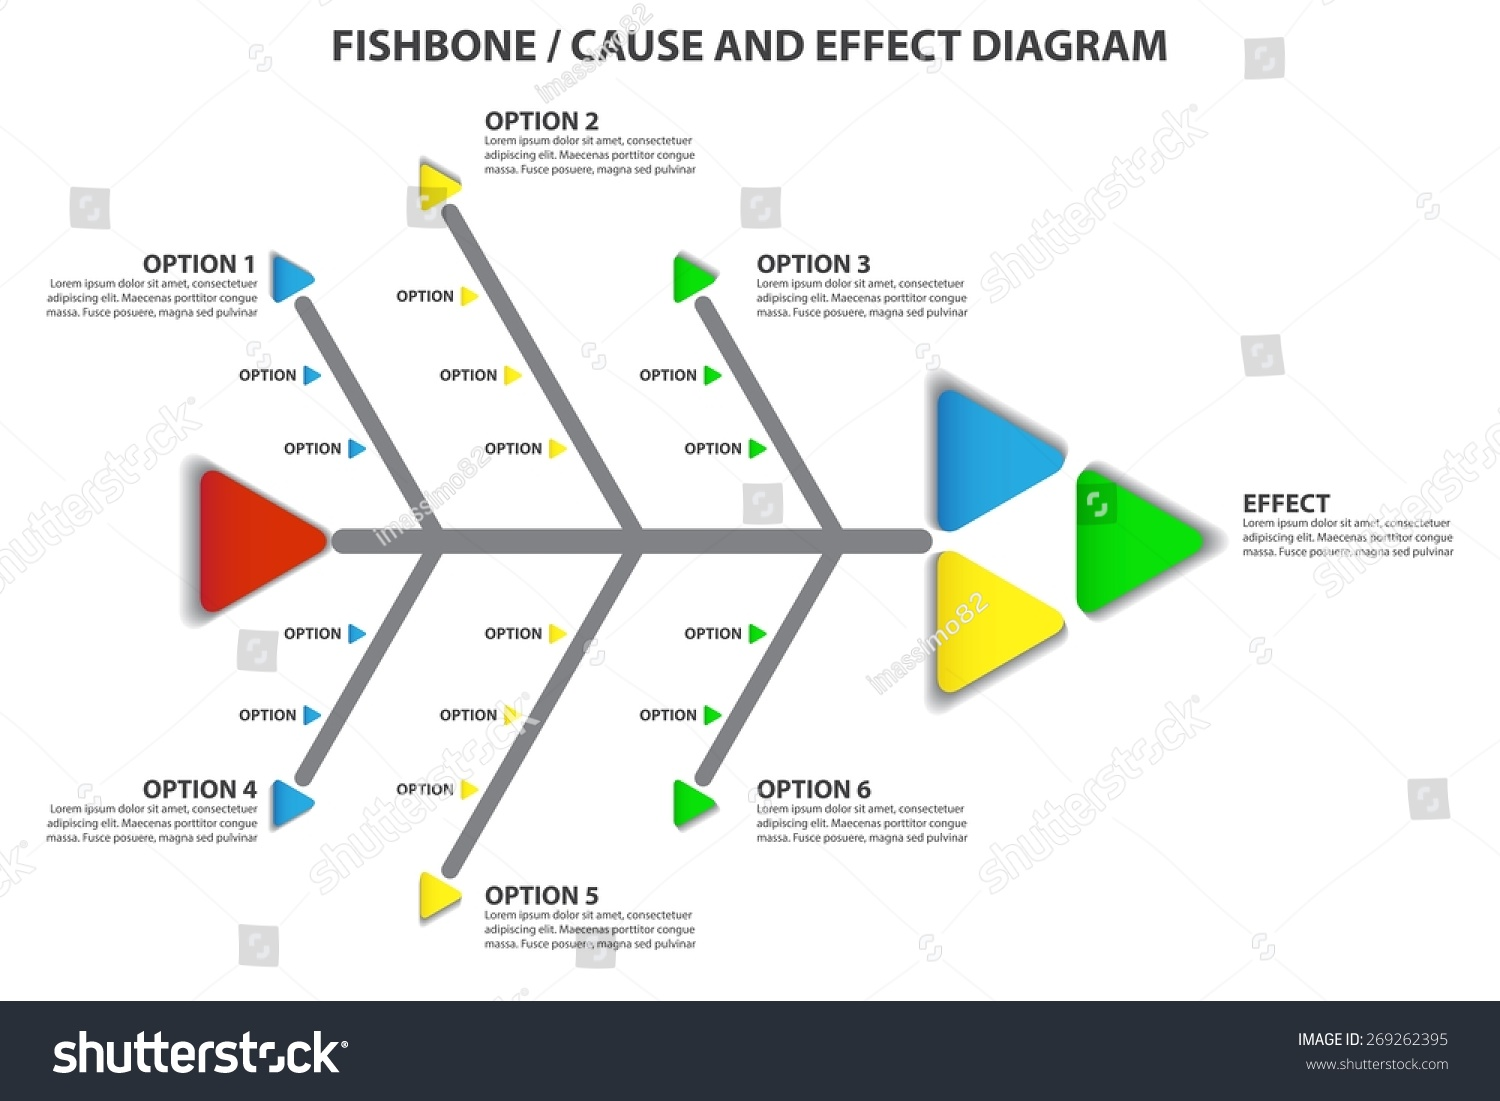 Cause effect fishbone diagram vector infographic stock vector cause and effect fishbone diagram vector infographic ccuart Gallery